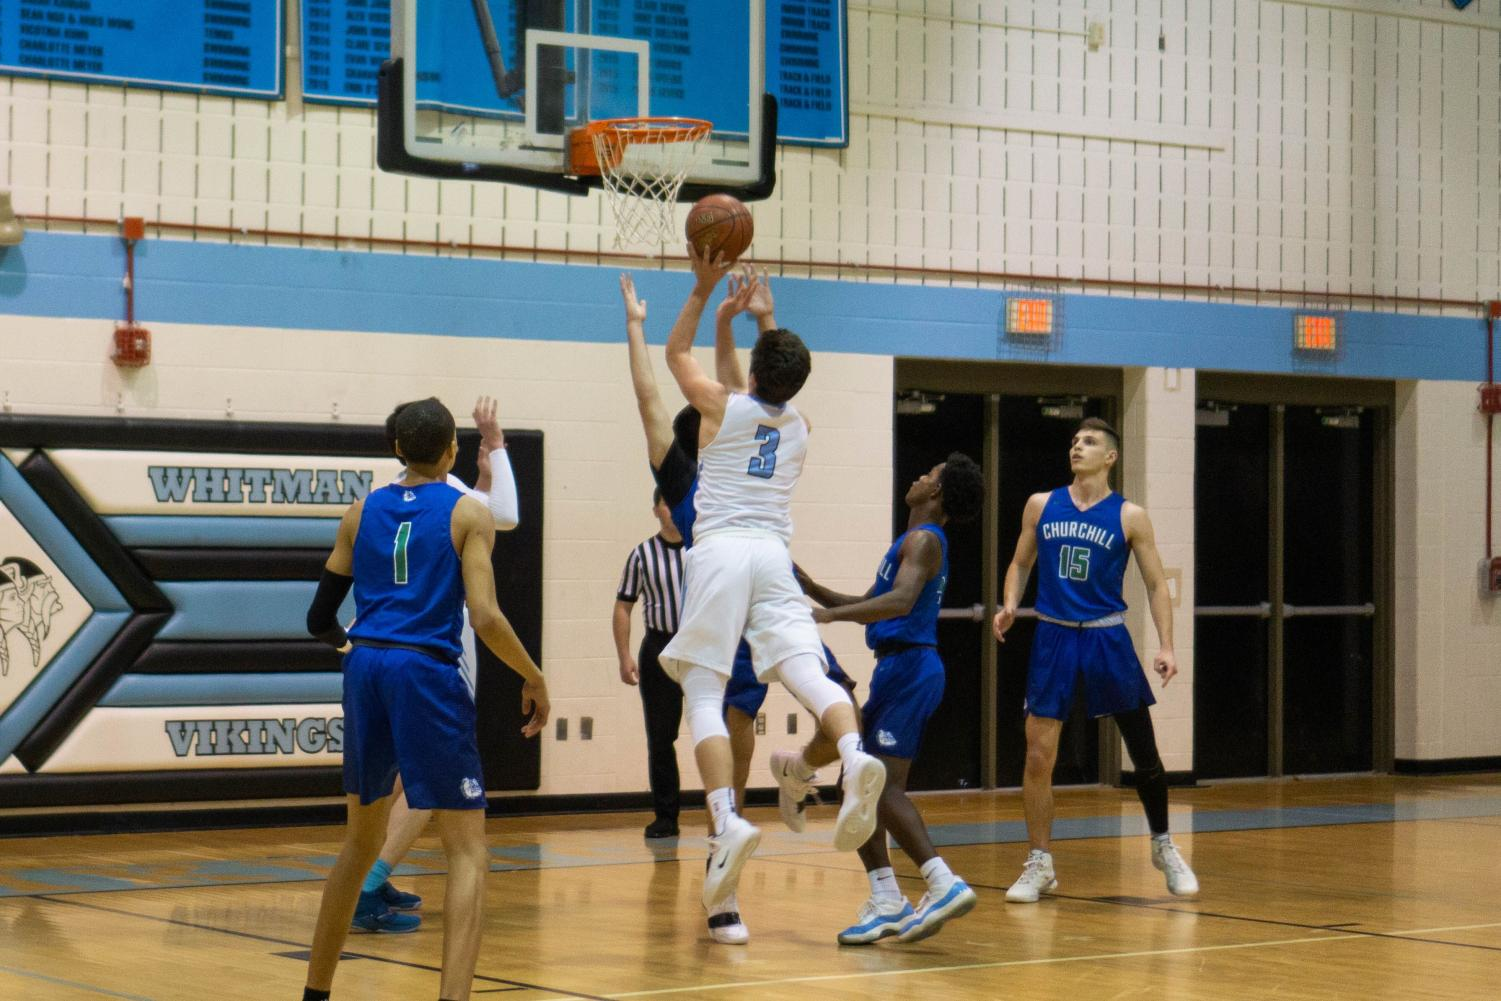 Senior Brendan Shaver drives for a layup against Churchill. The Vikes won both of their regular season games against the Bulldogs by double digits, and will face off with Churchill in the second round of playoffs tomorrow.